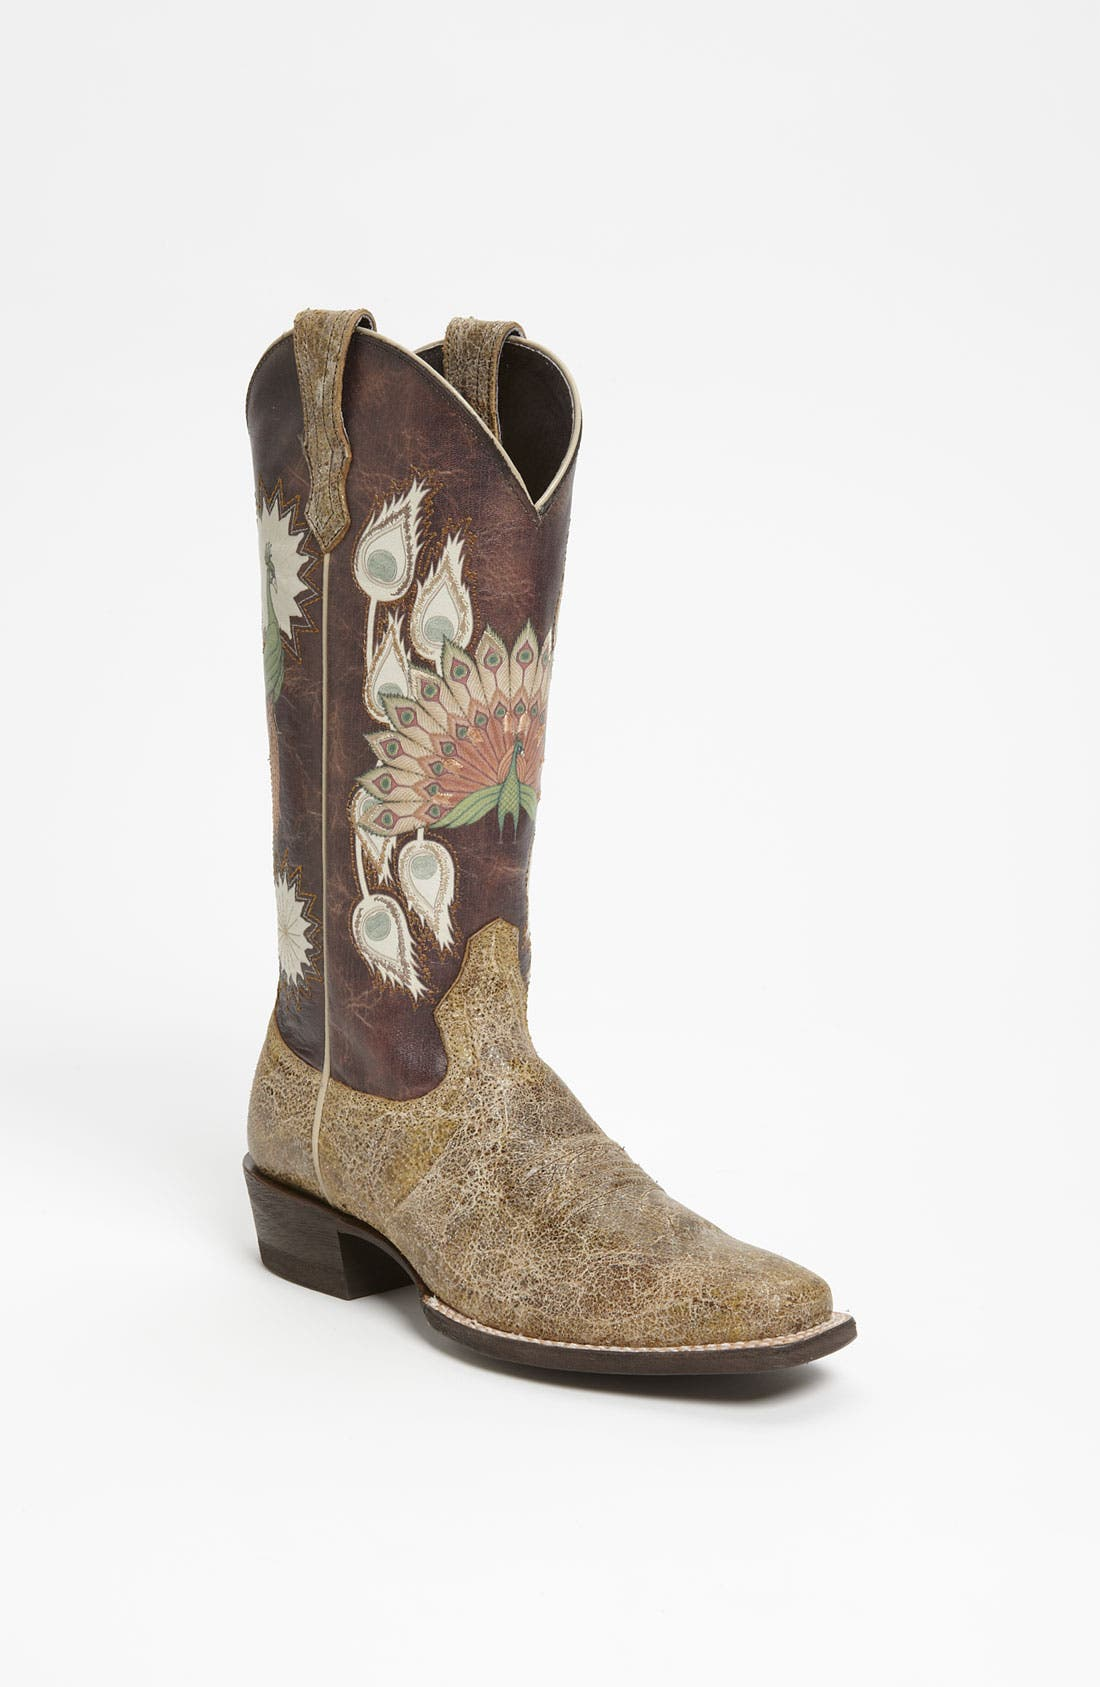 Alternate Image 1 Selected - Ariat 'Mystic Feathers' Boot